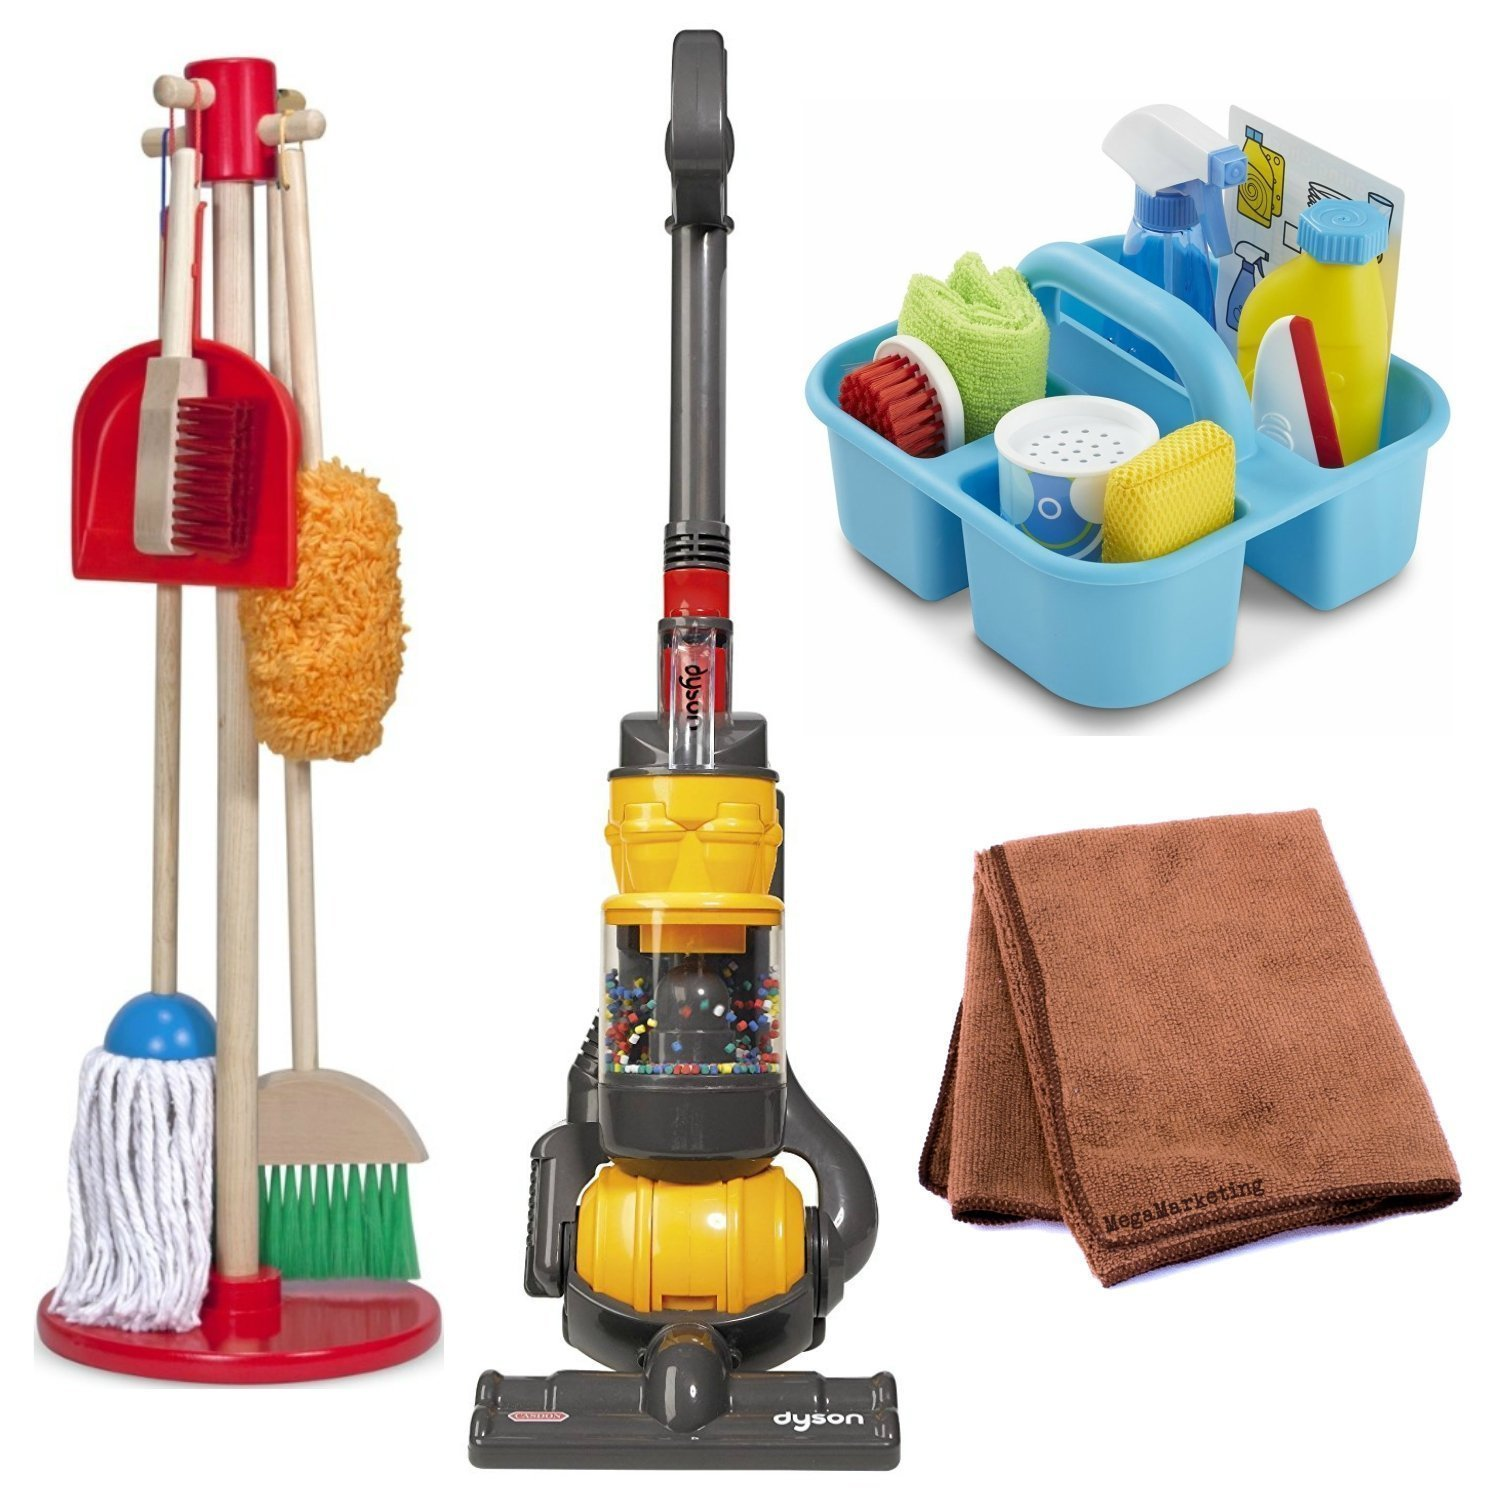 Toy Vacuum Pretend Play Dyson Ball Vacuum With Real Suction and Sounds with Melissa and Doug Cleaning Set and Cleaning Cloth